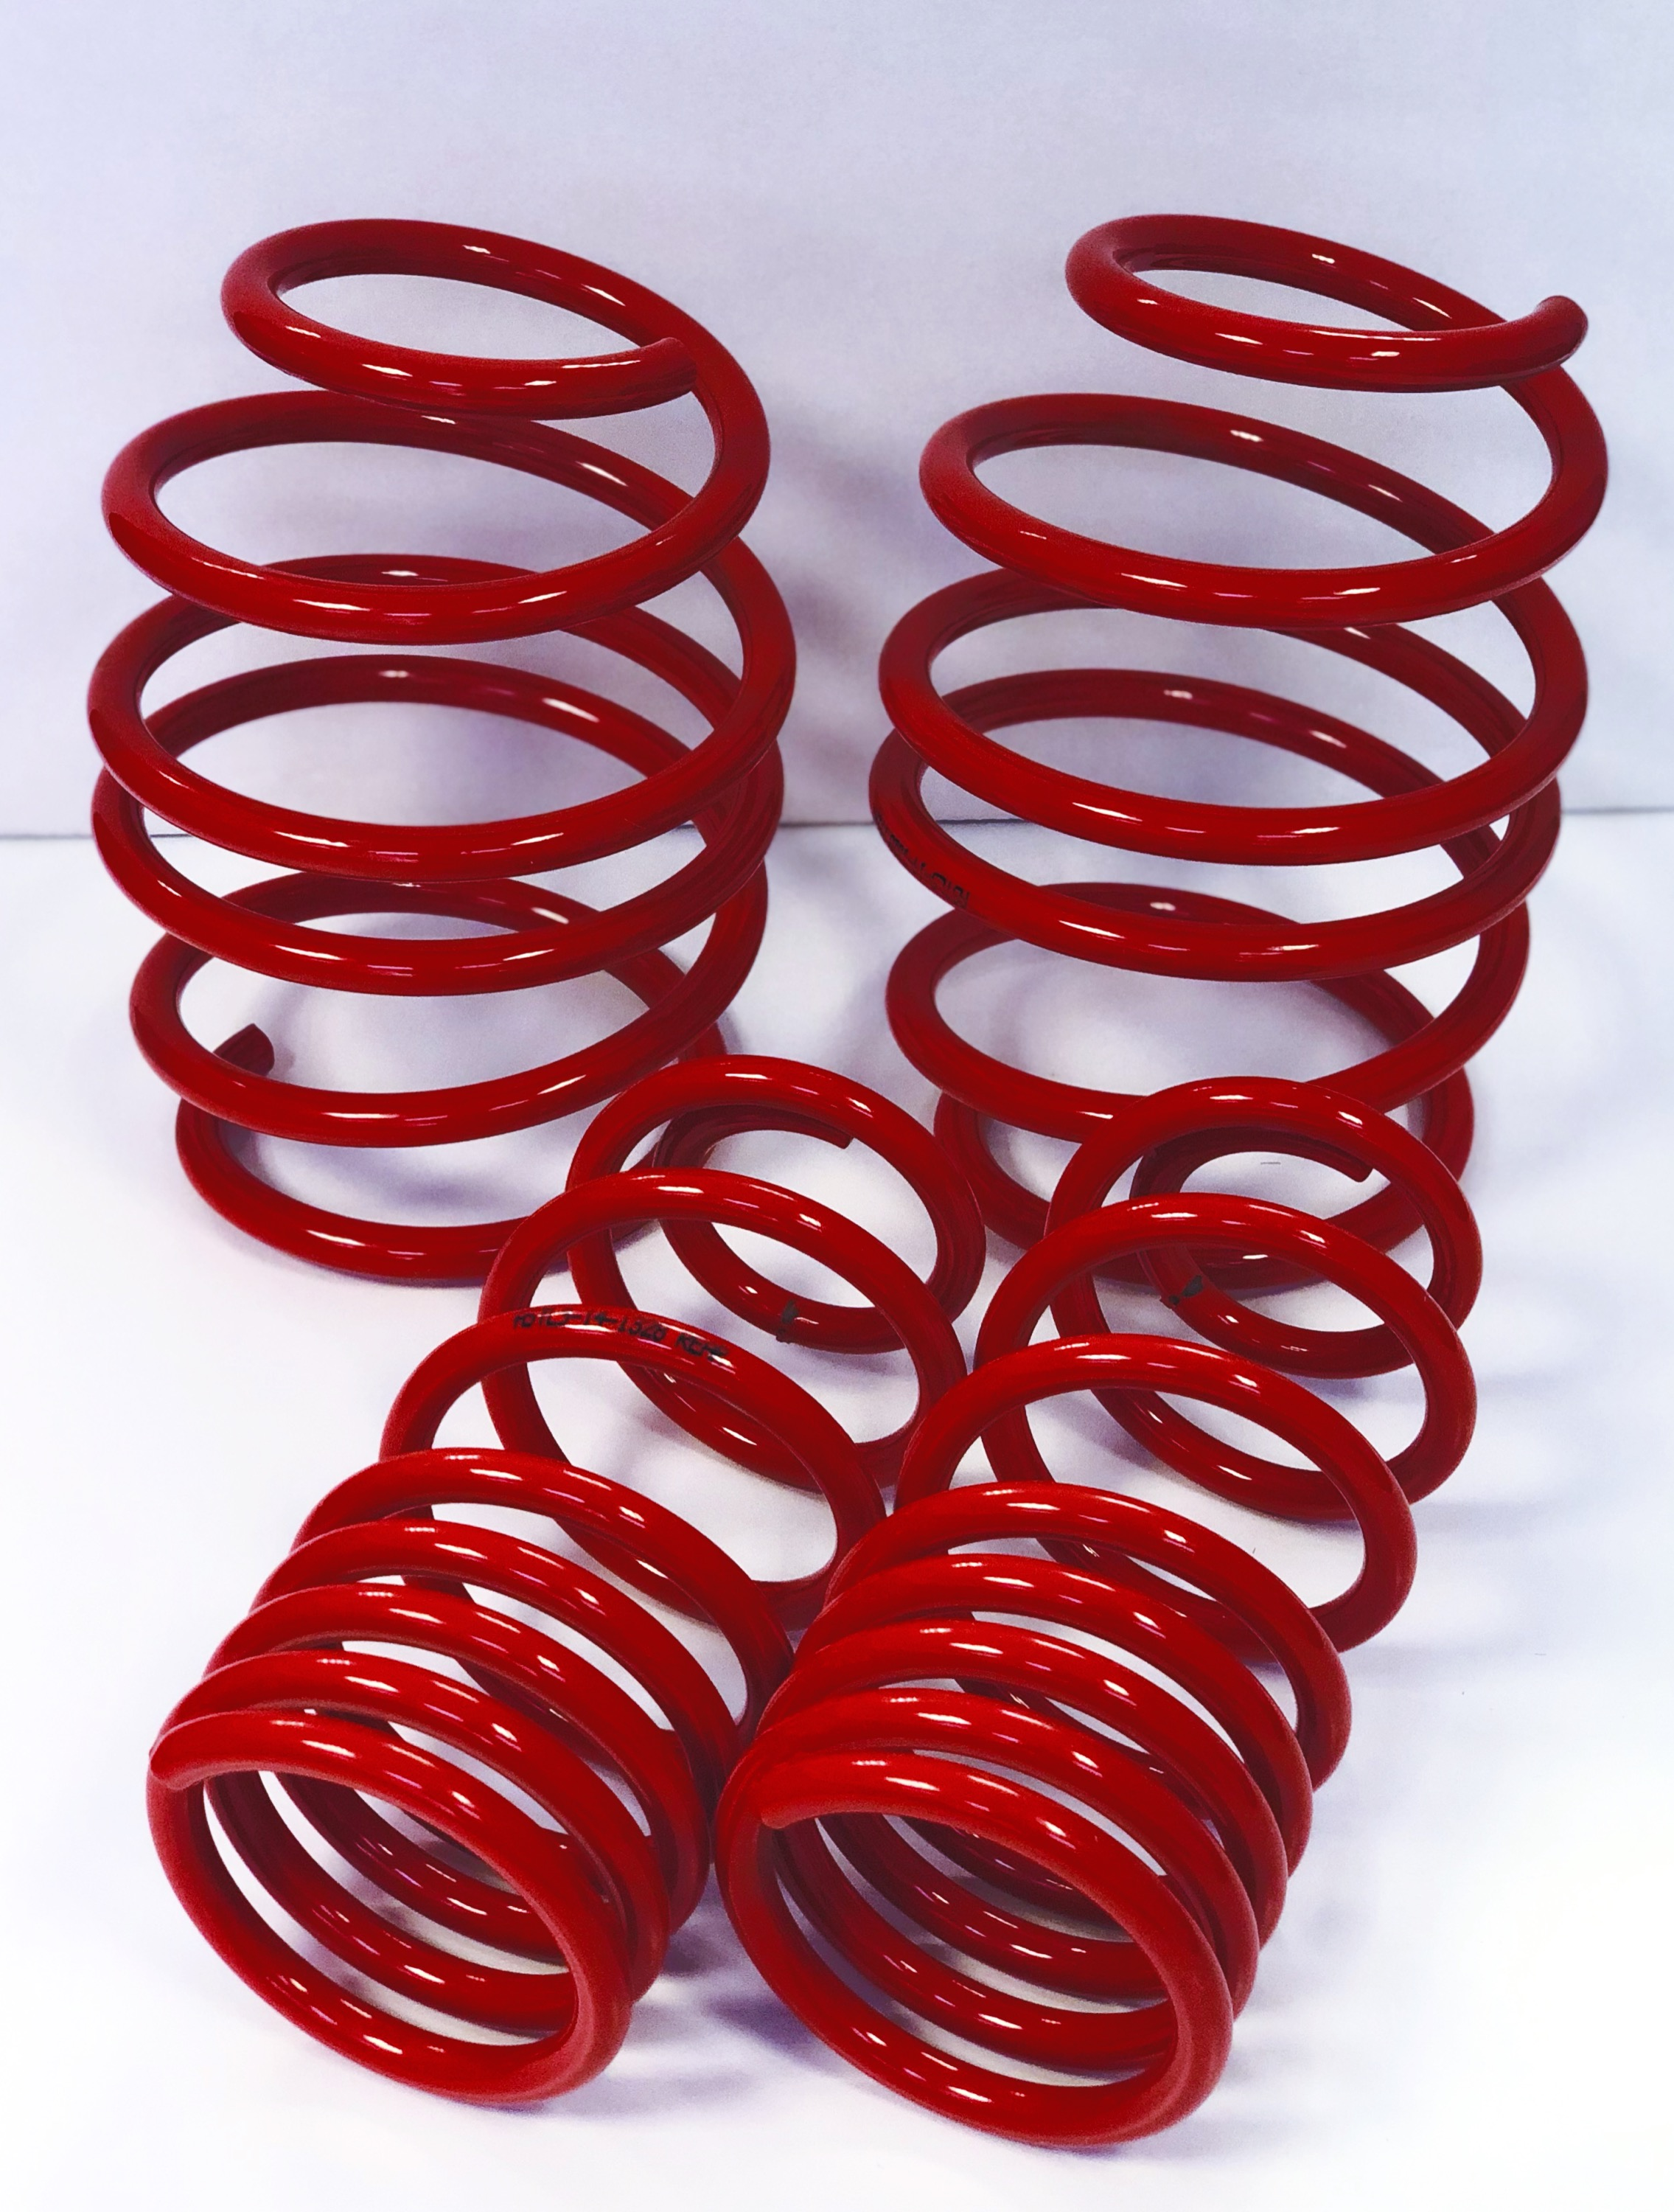 Seat LEON AST Suspension Lowering Springs 40MM